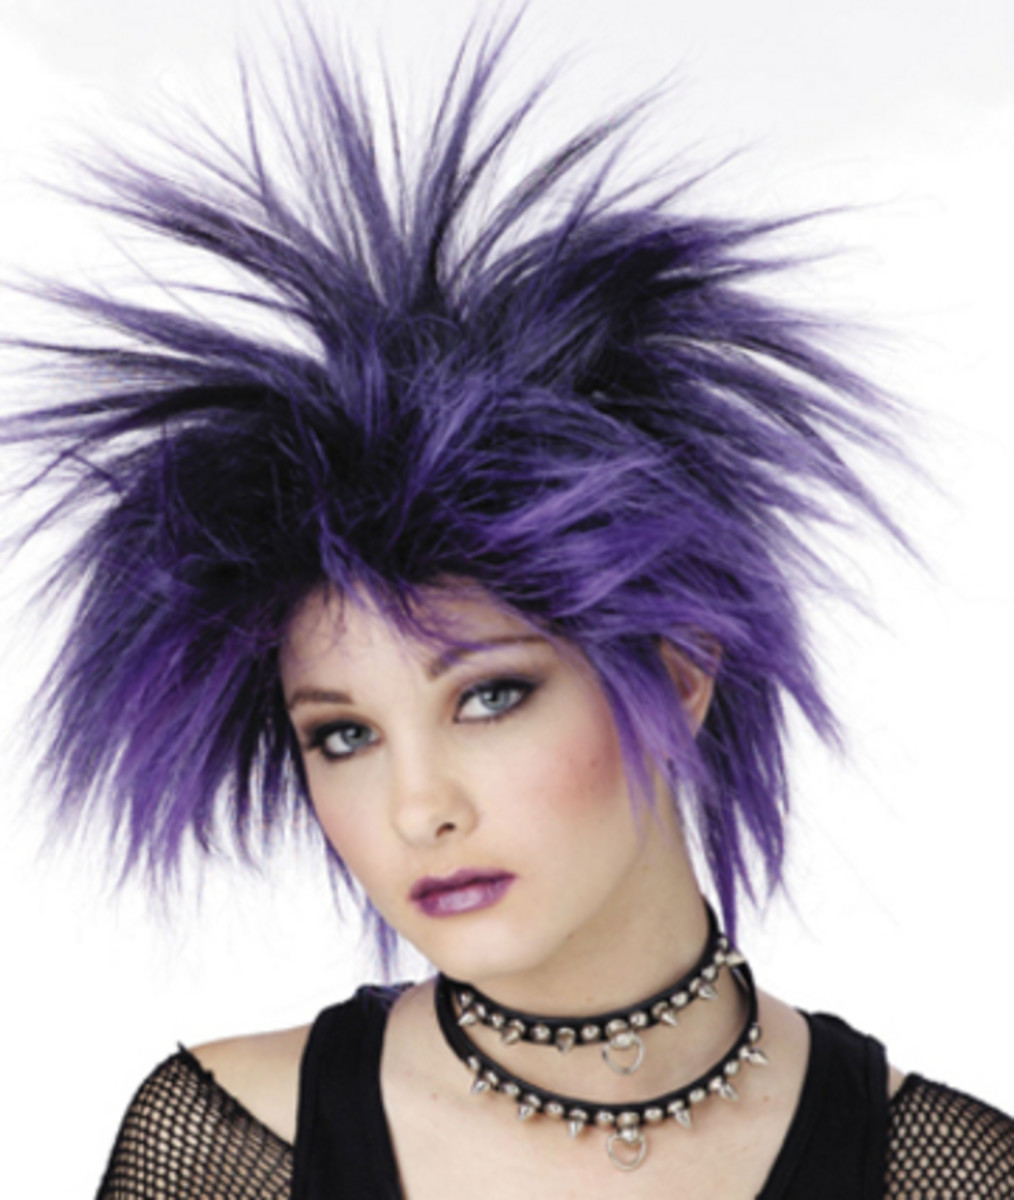 Punk Rock Hairstyles For Short Hair - Wedding Decor and Hairstyle ...